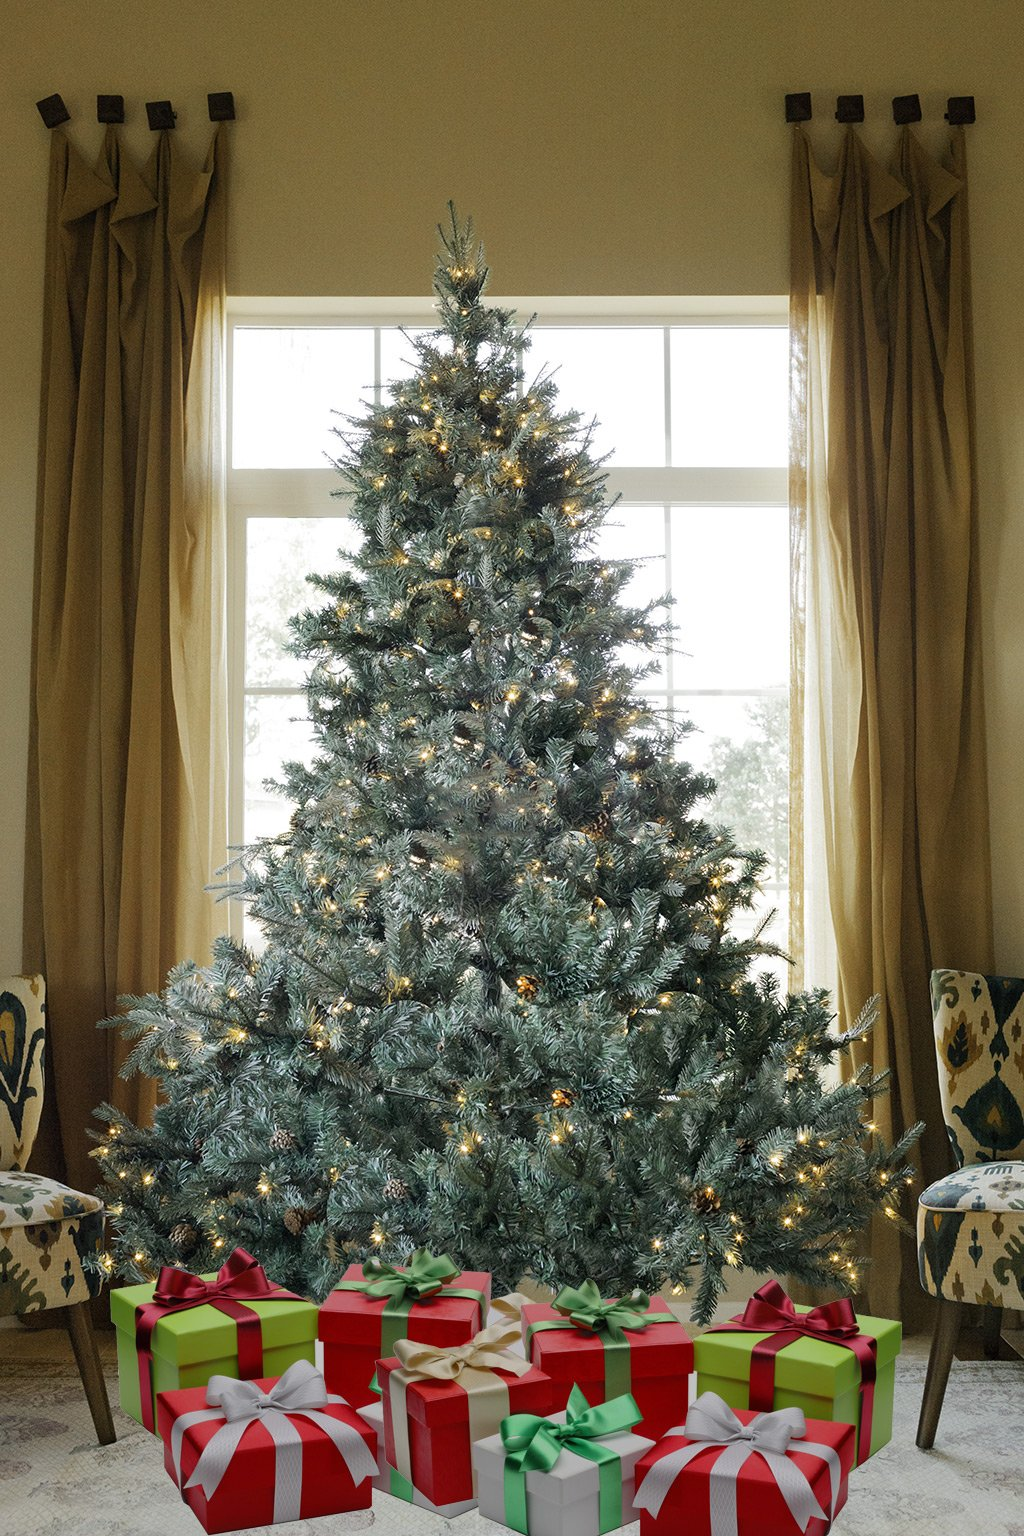 8 FT Prelit Premium Spruce Hinged Artificial Christmas Tree 1600 Realistic Branch Tips / Pines With 600 LED lights and Stand by xmasource (Image #5)